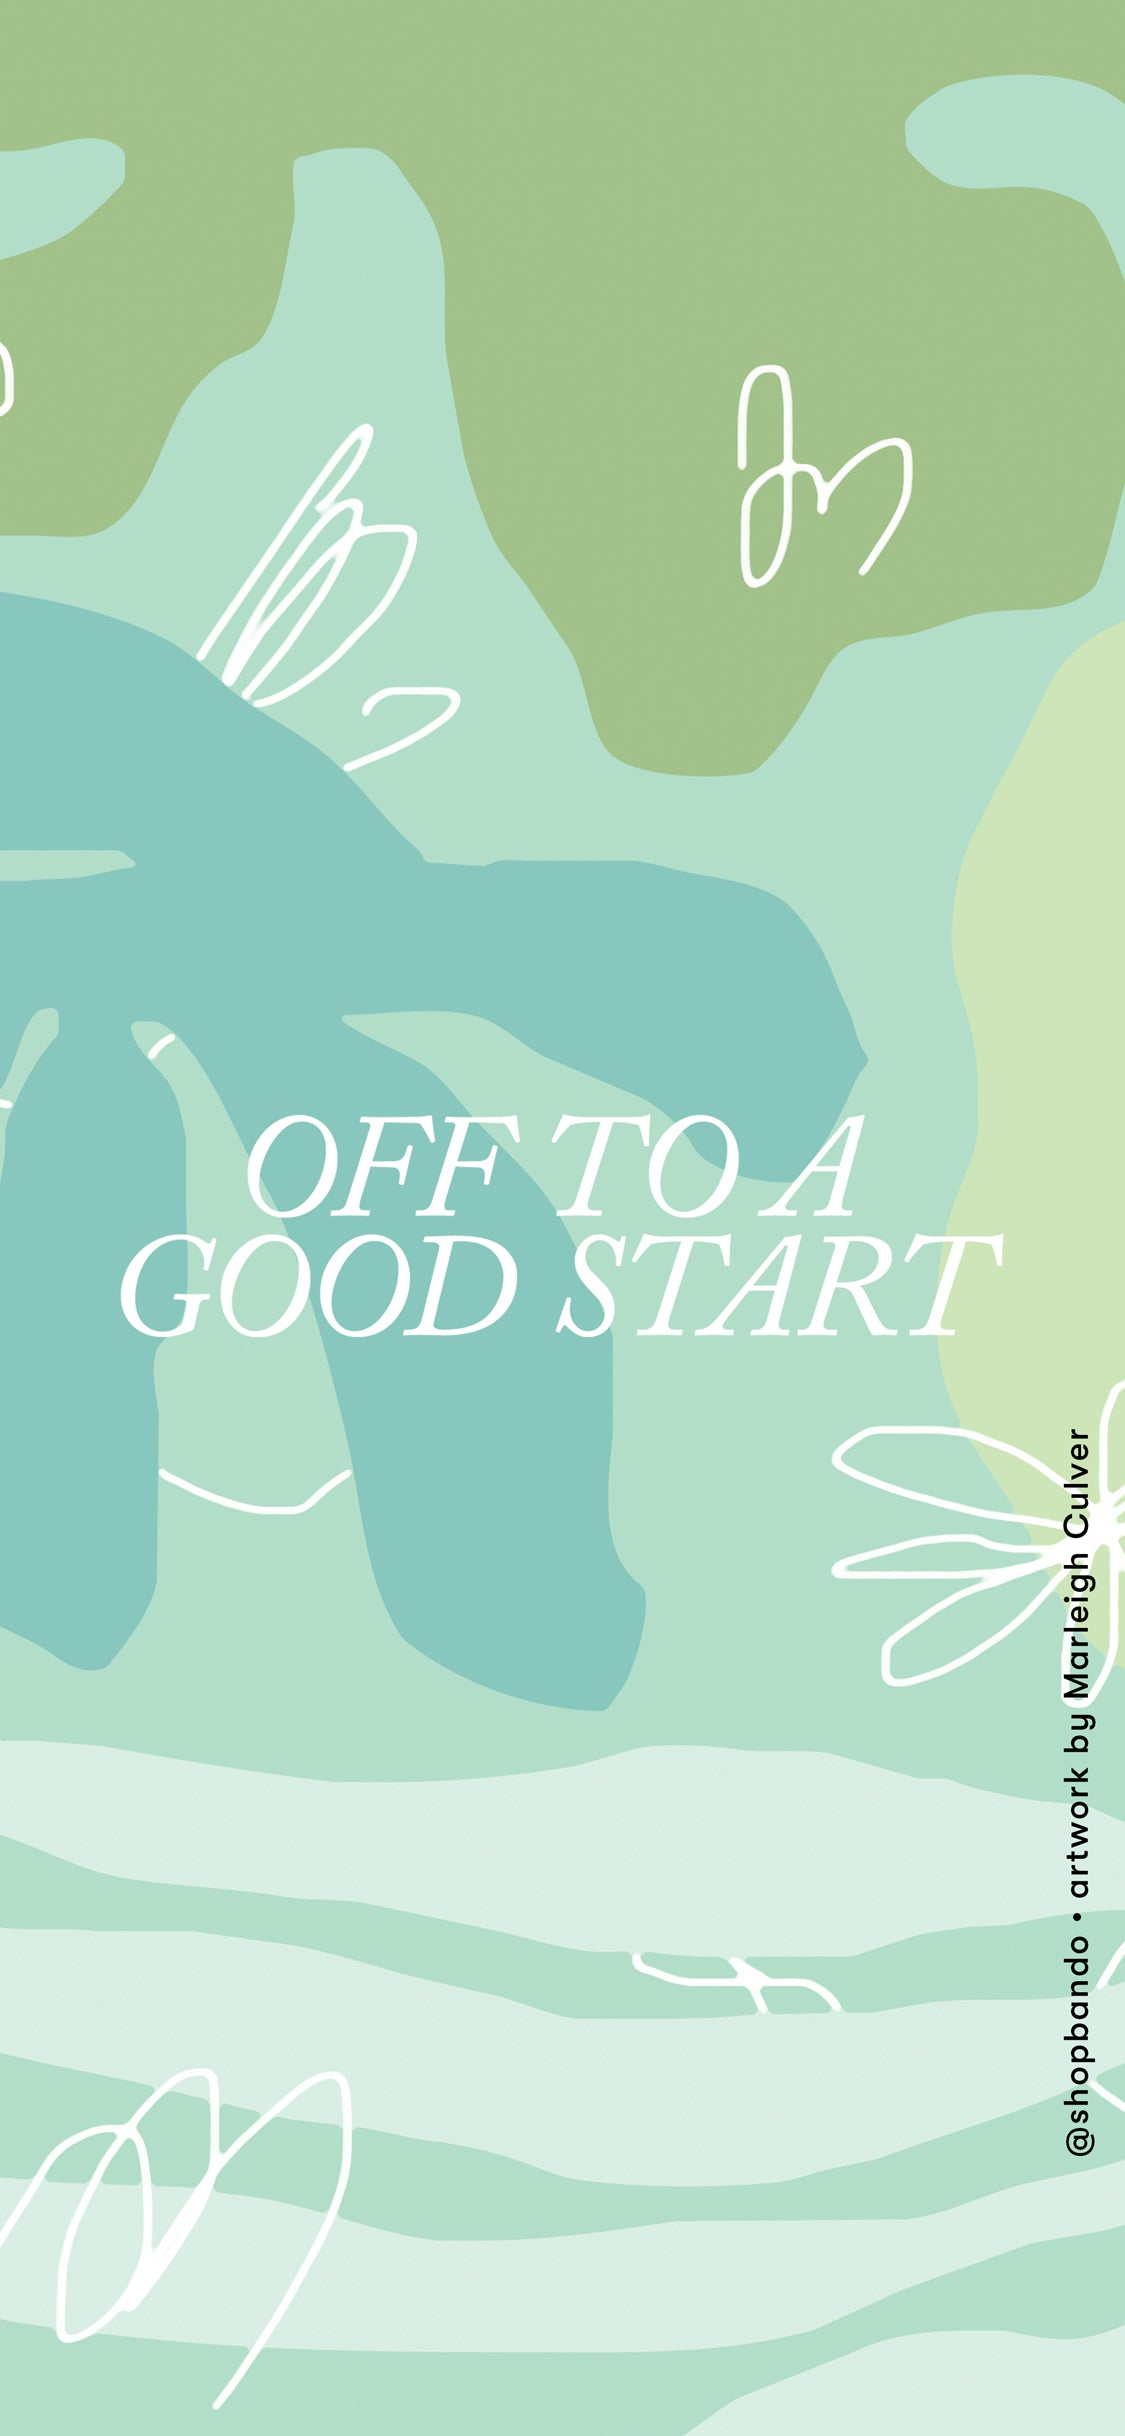 off to a good start lettering against green background